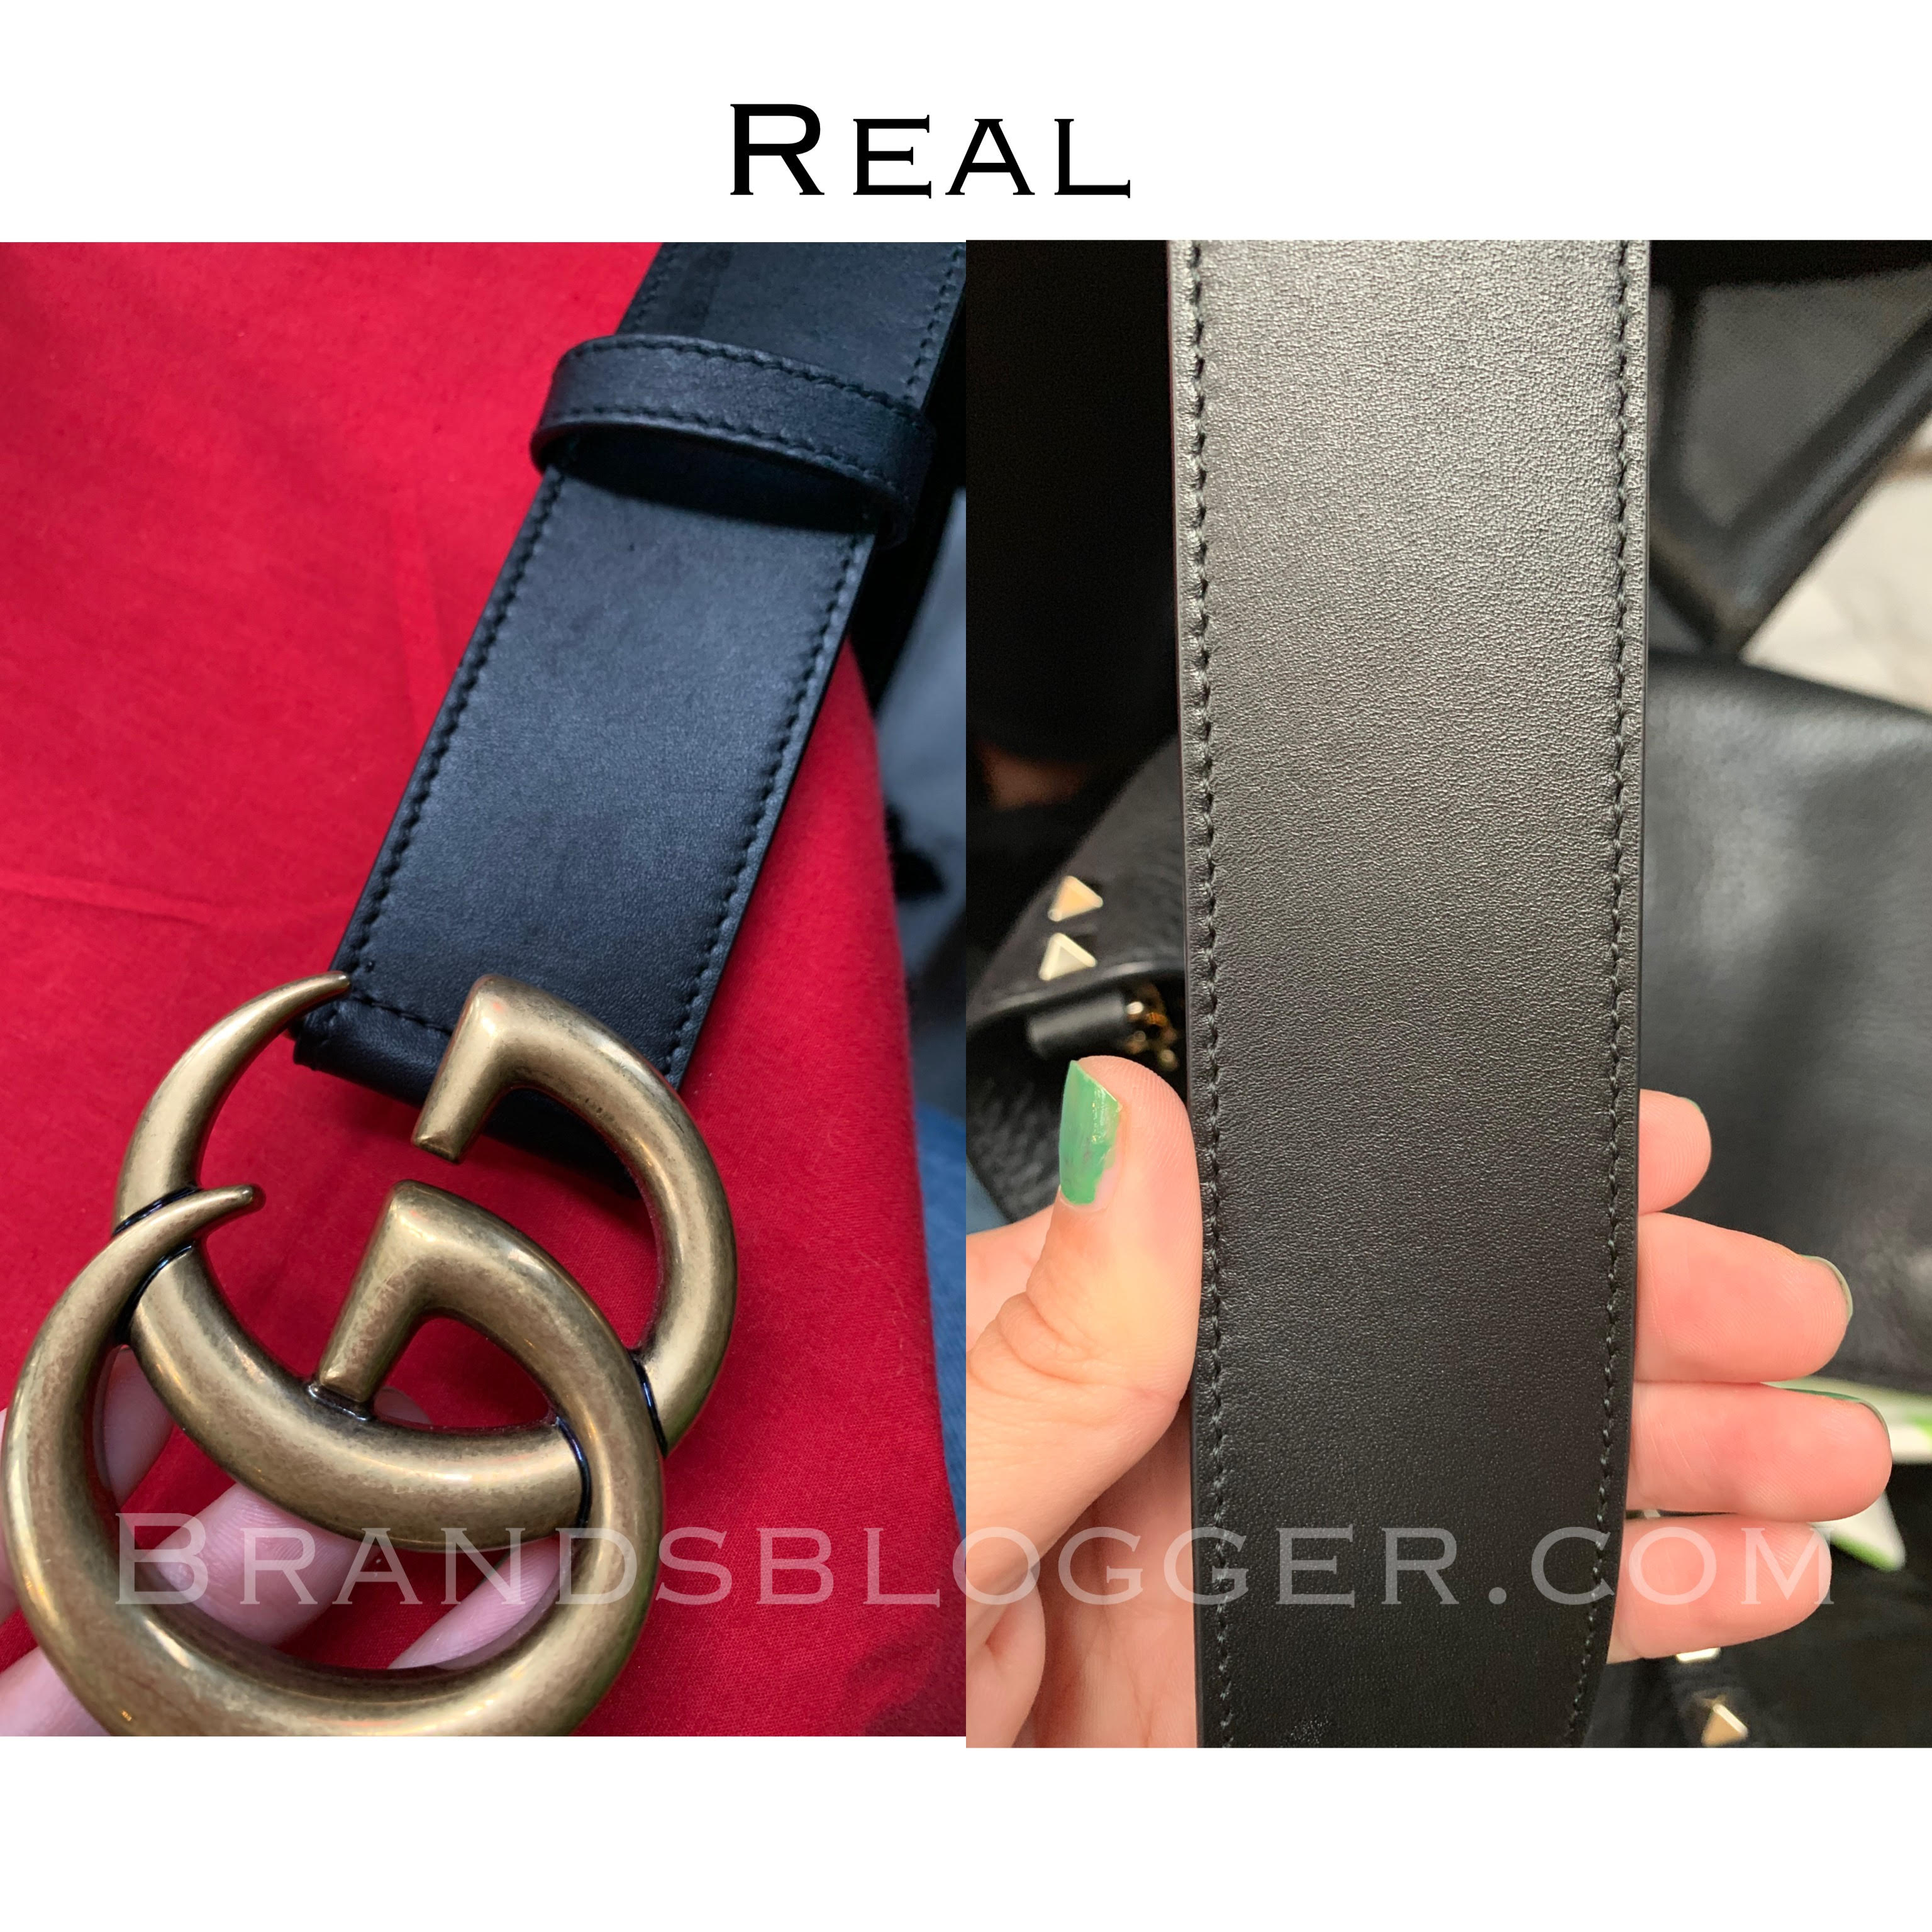 e16255ed998 How To Spot A Fake Double G Gucci Belt - Brands Blogger